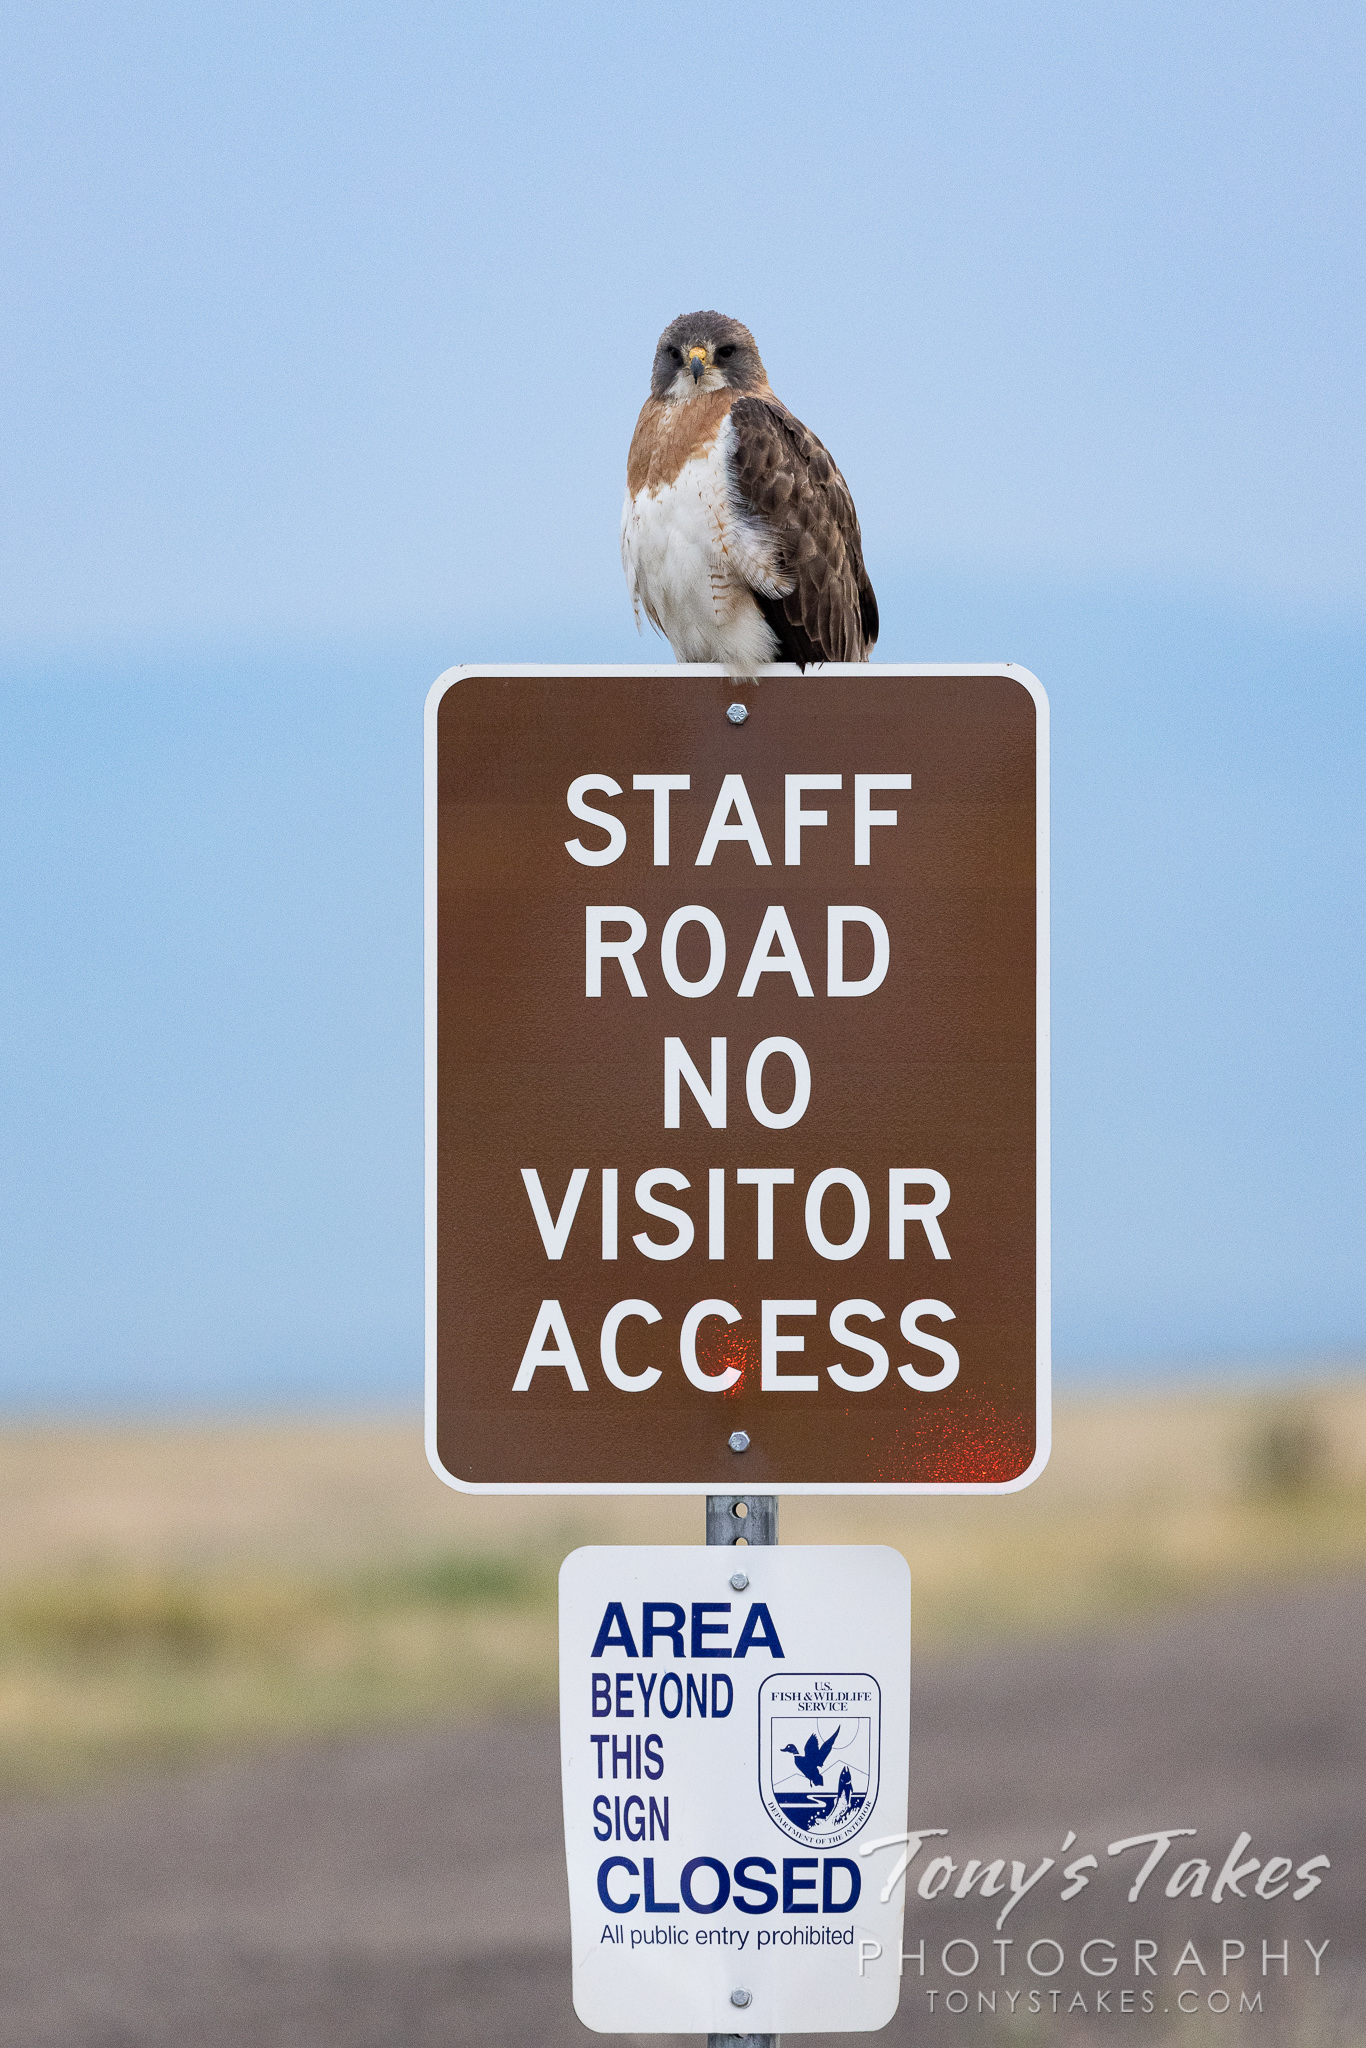 Rocky Mountain Arsenal National Wildlife Refuge gets serious about enforcement